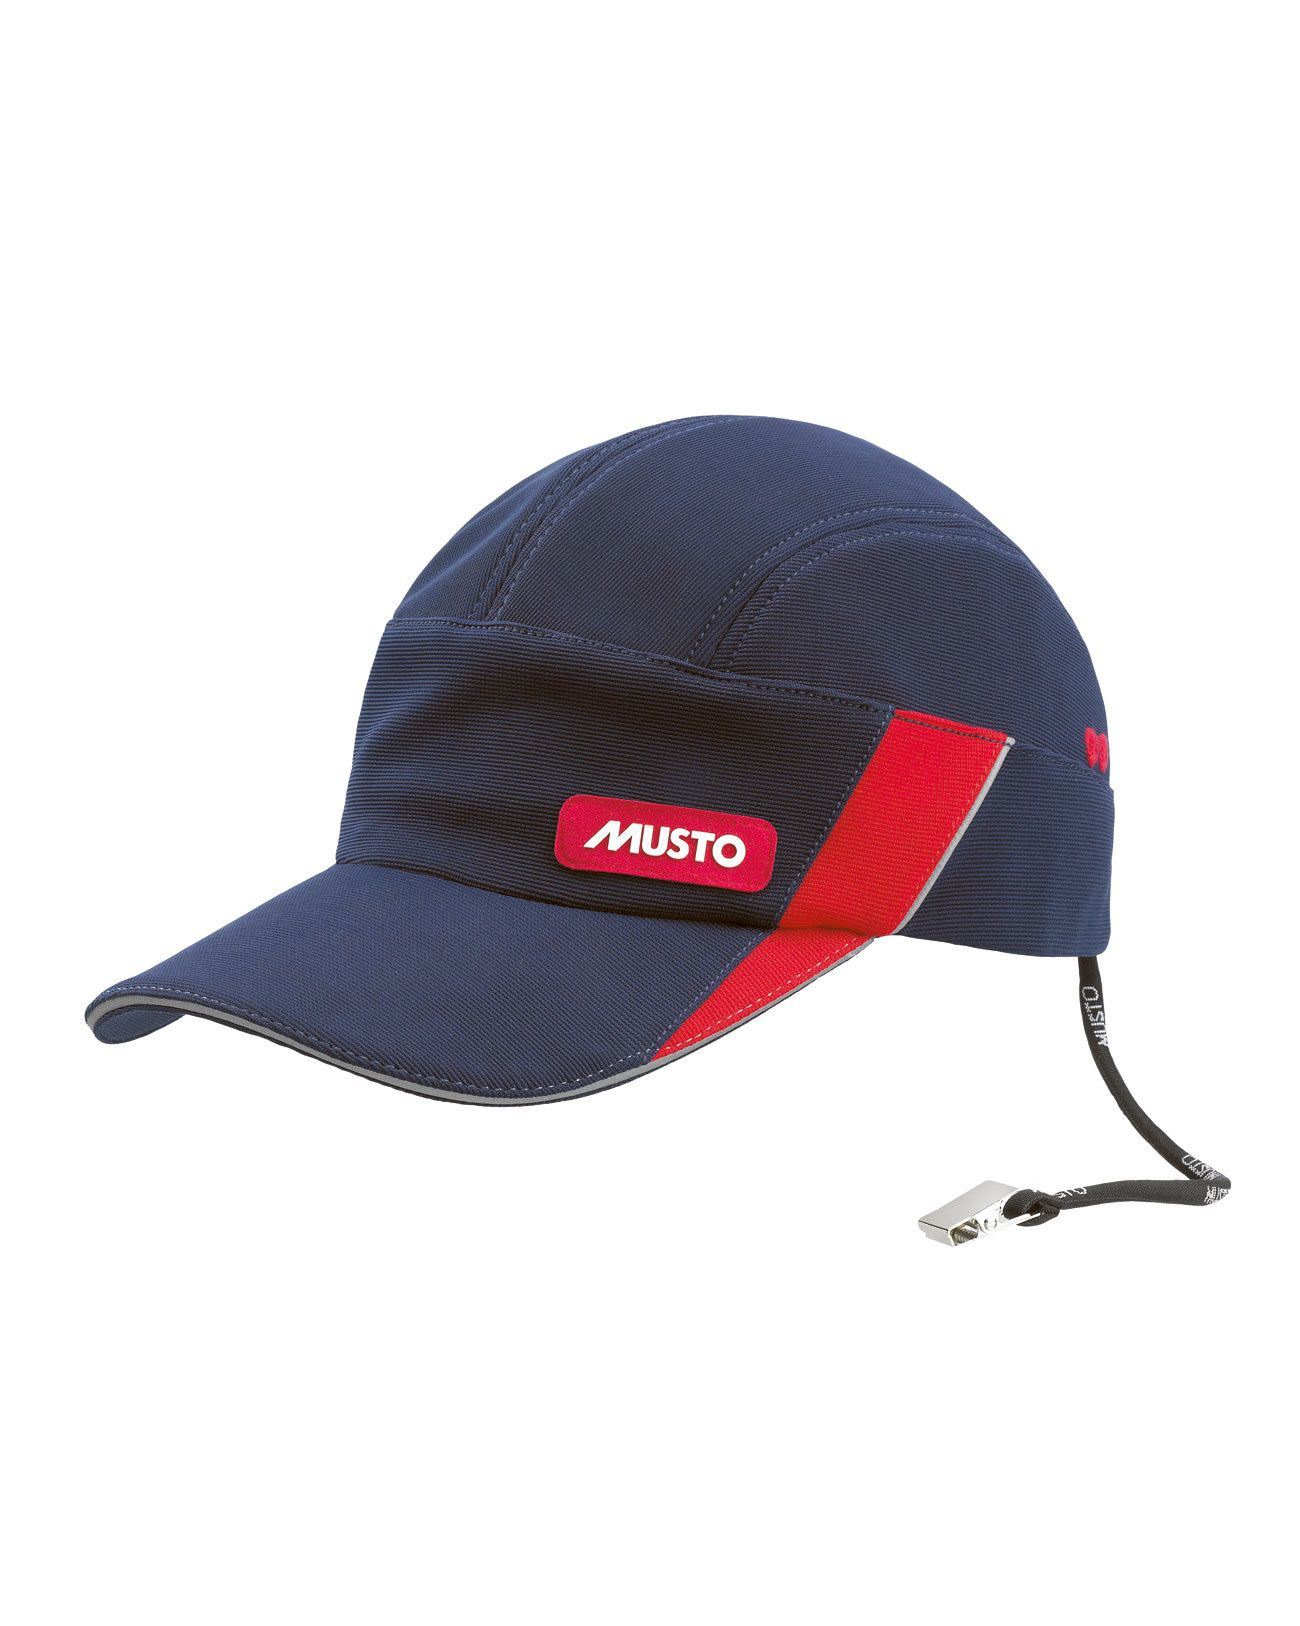 cb47904f Love this Musto Ocean Race Cap I bought in Newport, RI during the AC. Dries  very quickly and fits perfectly.